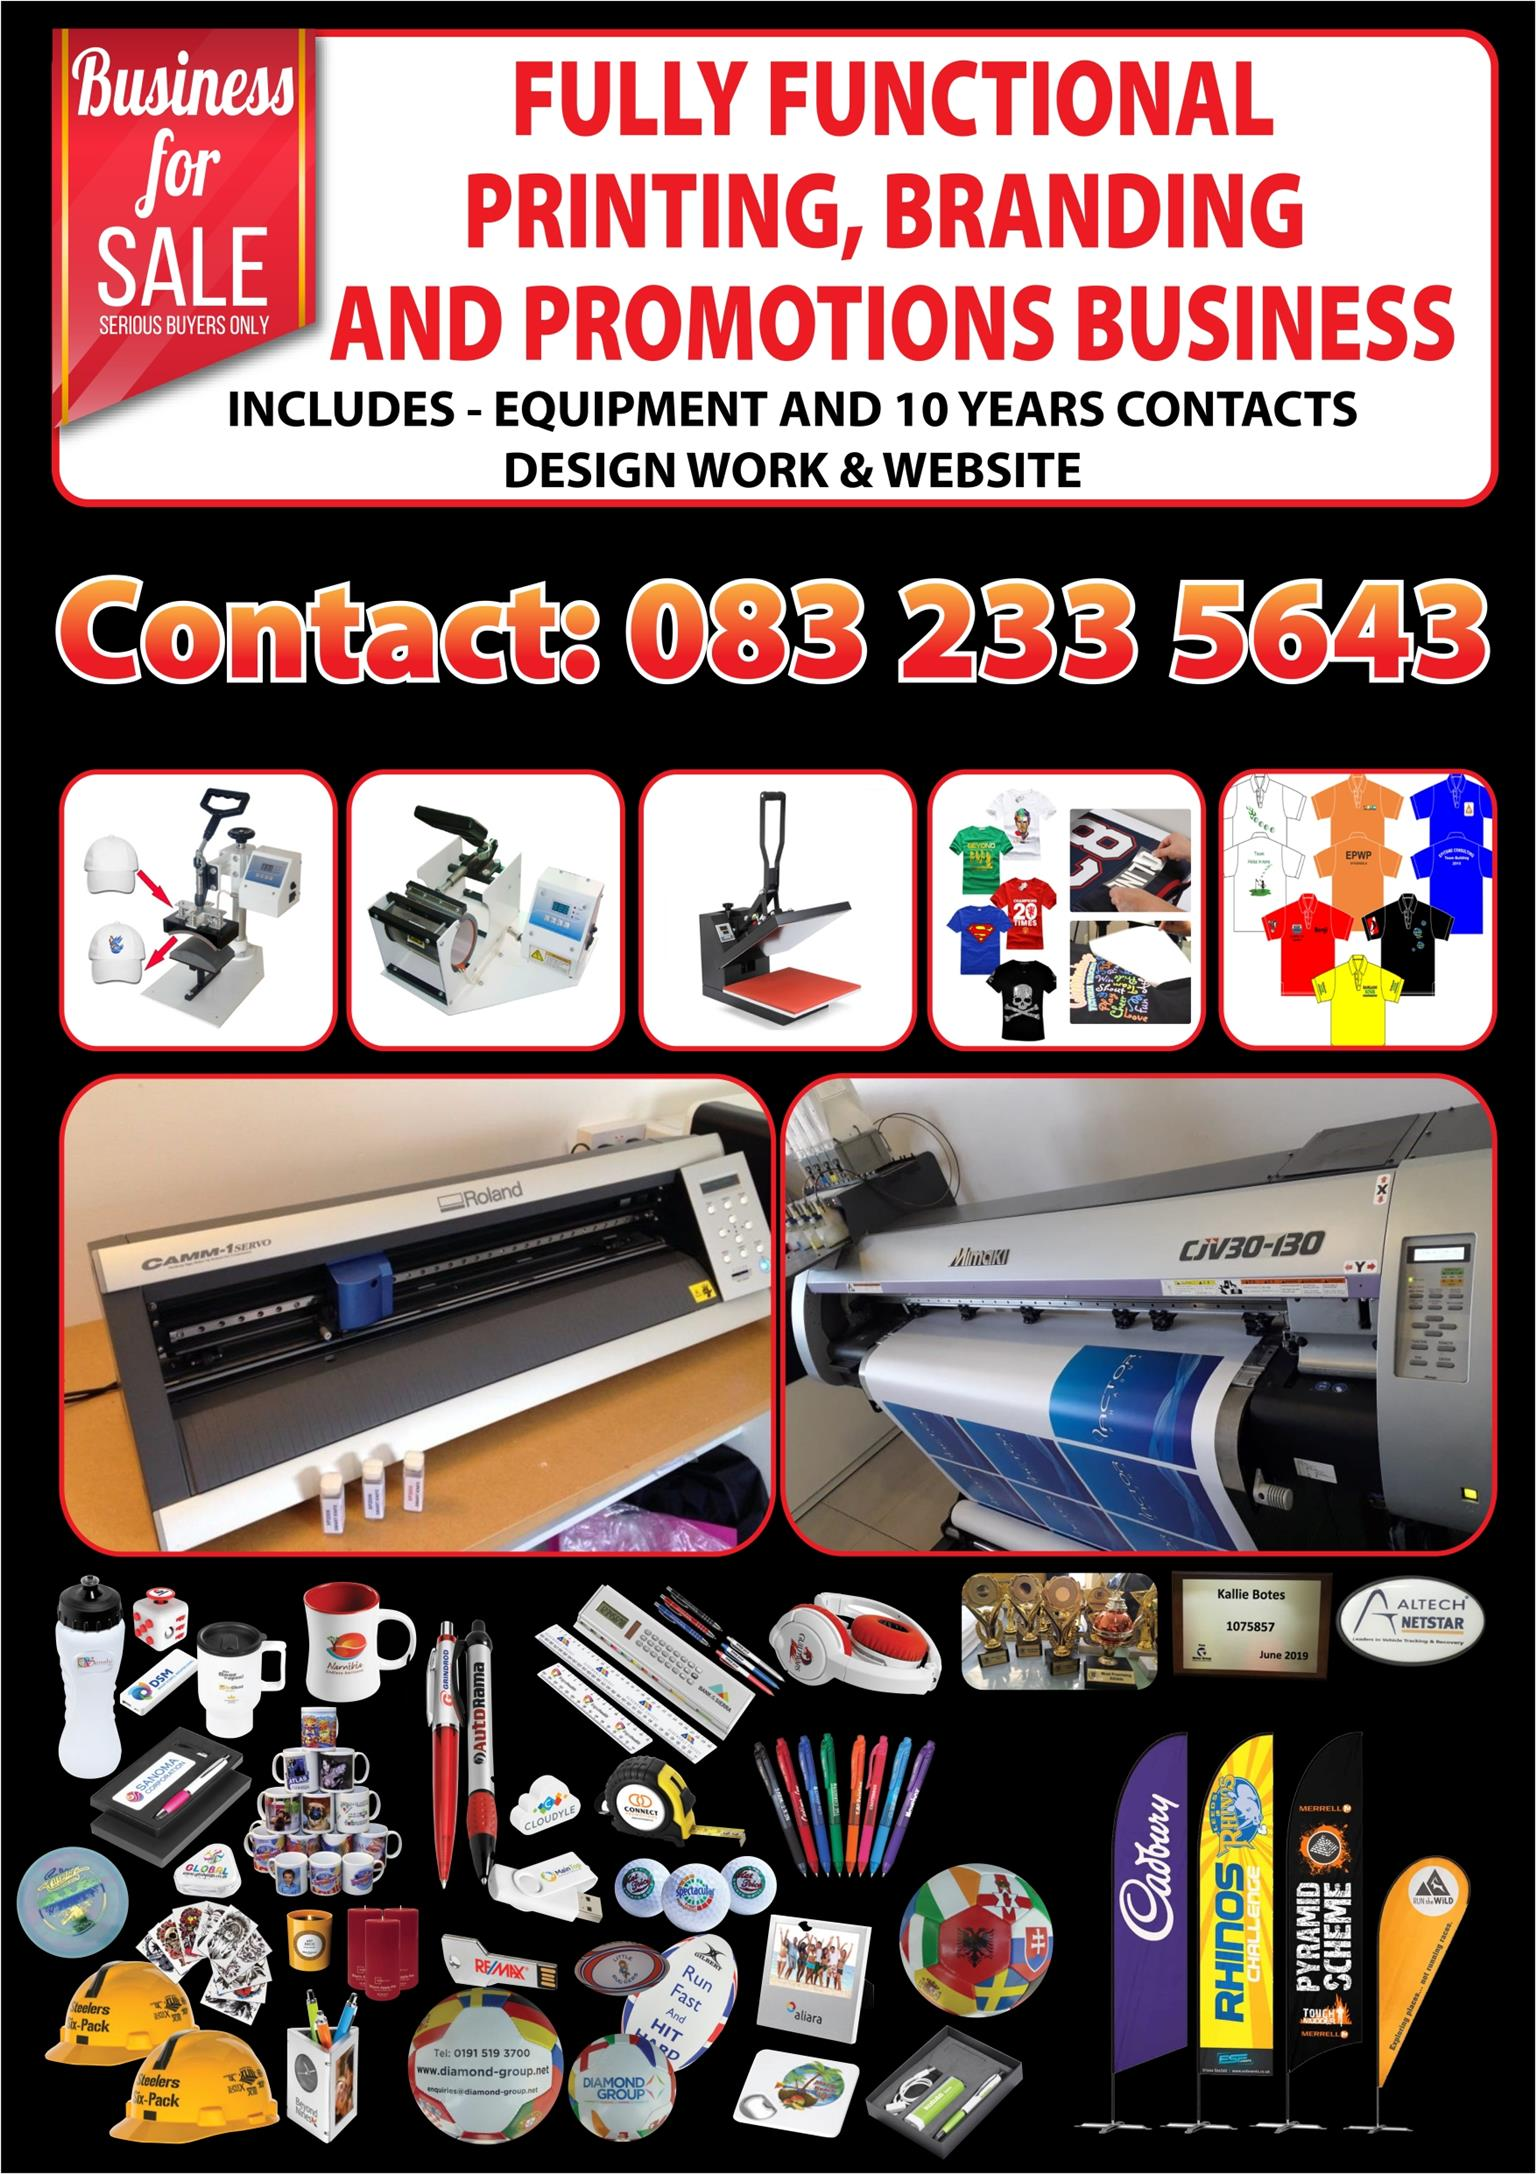 PRINTING, BRANDING AND PROMOTIONAL BUSINESS FOR SALE